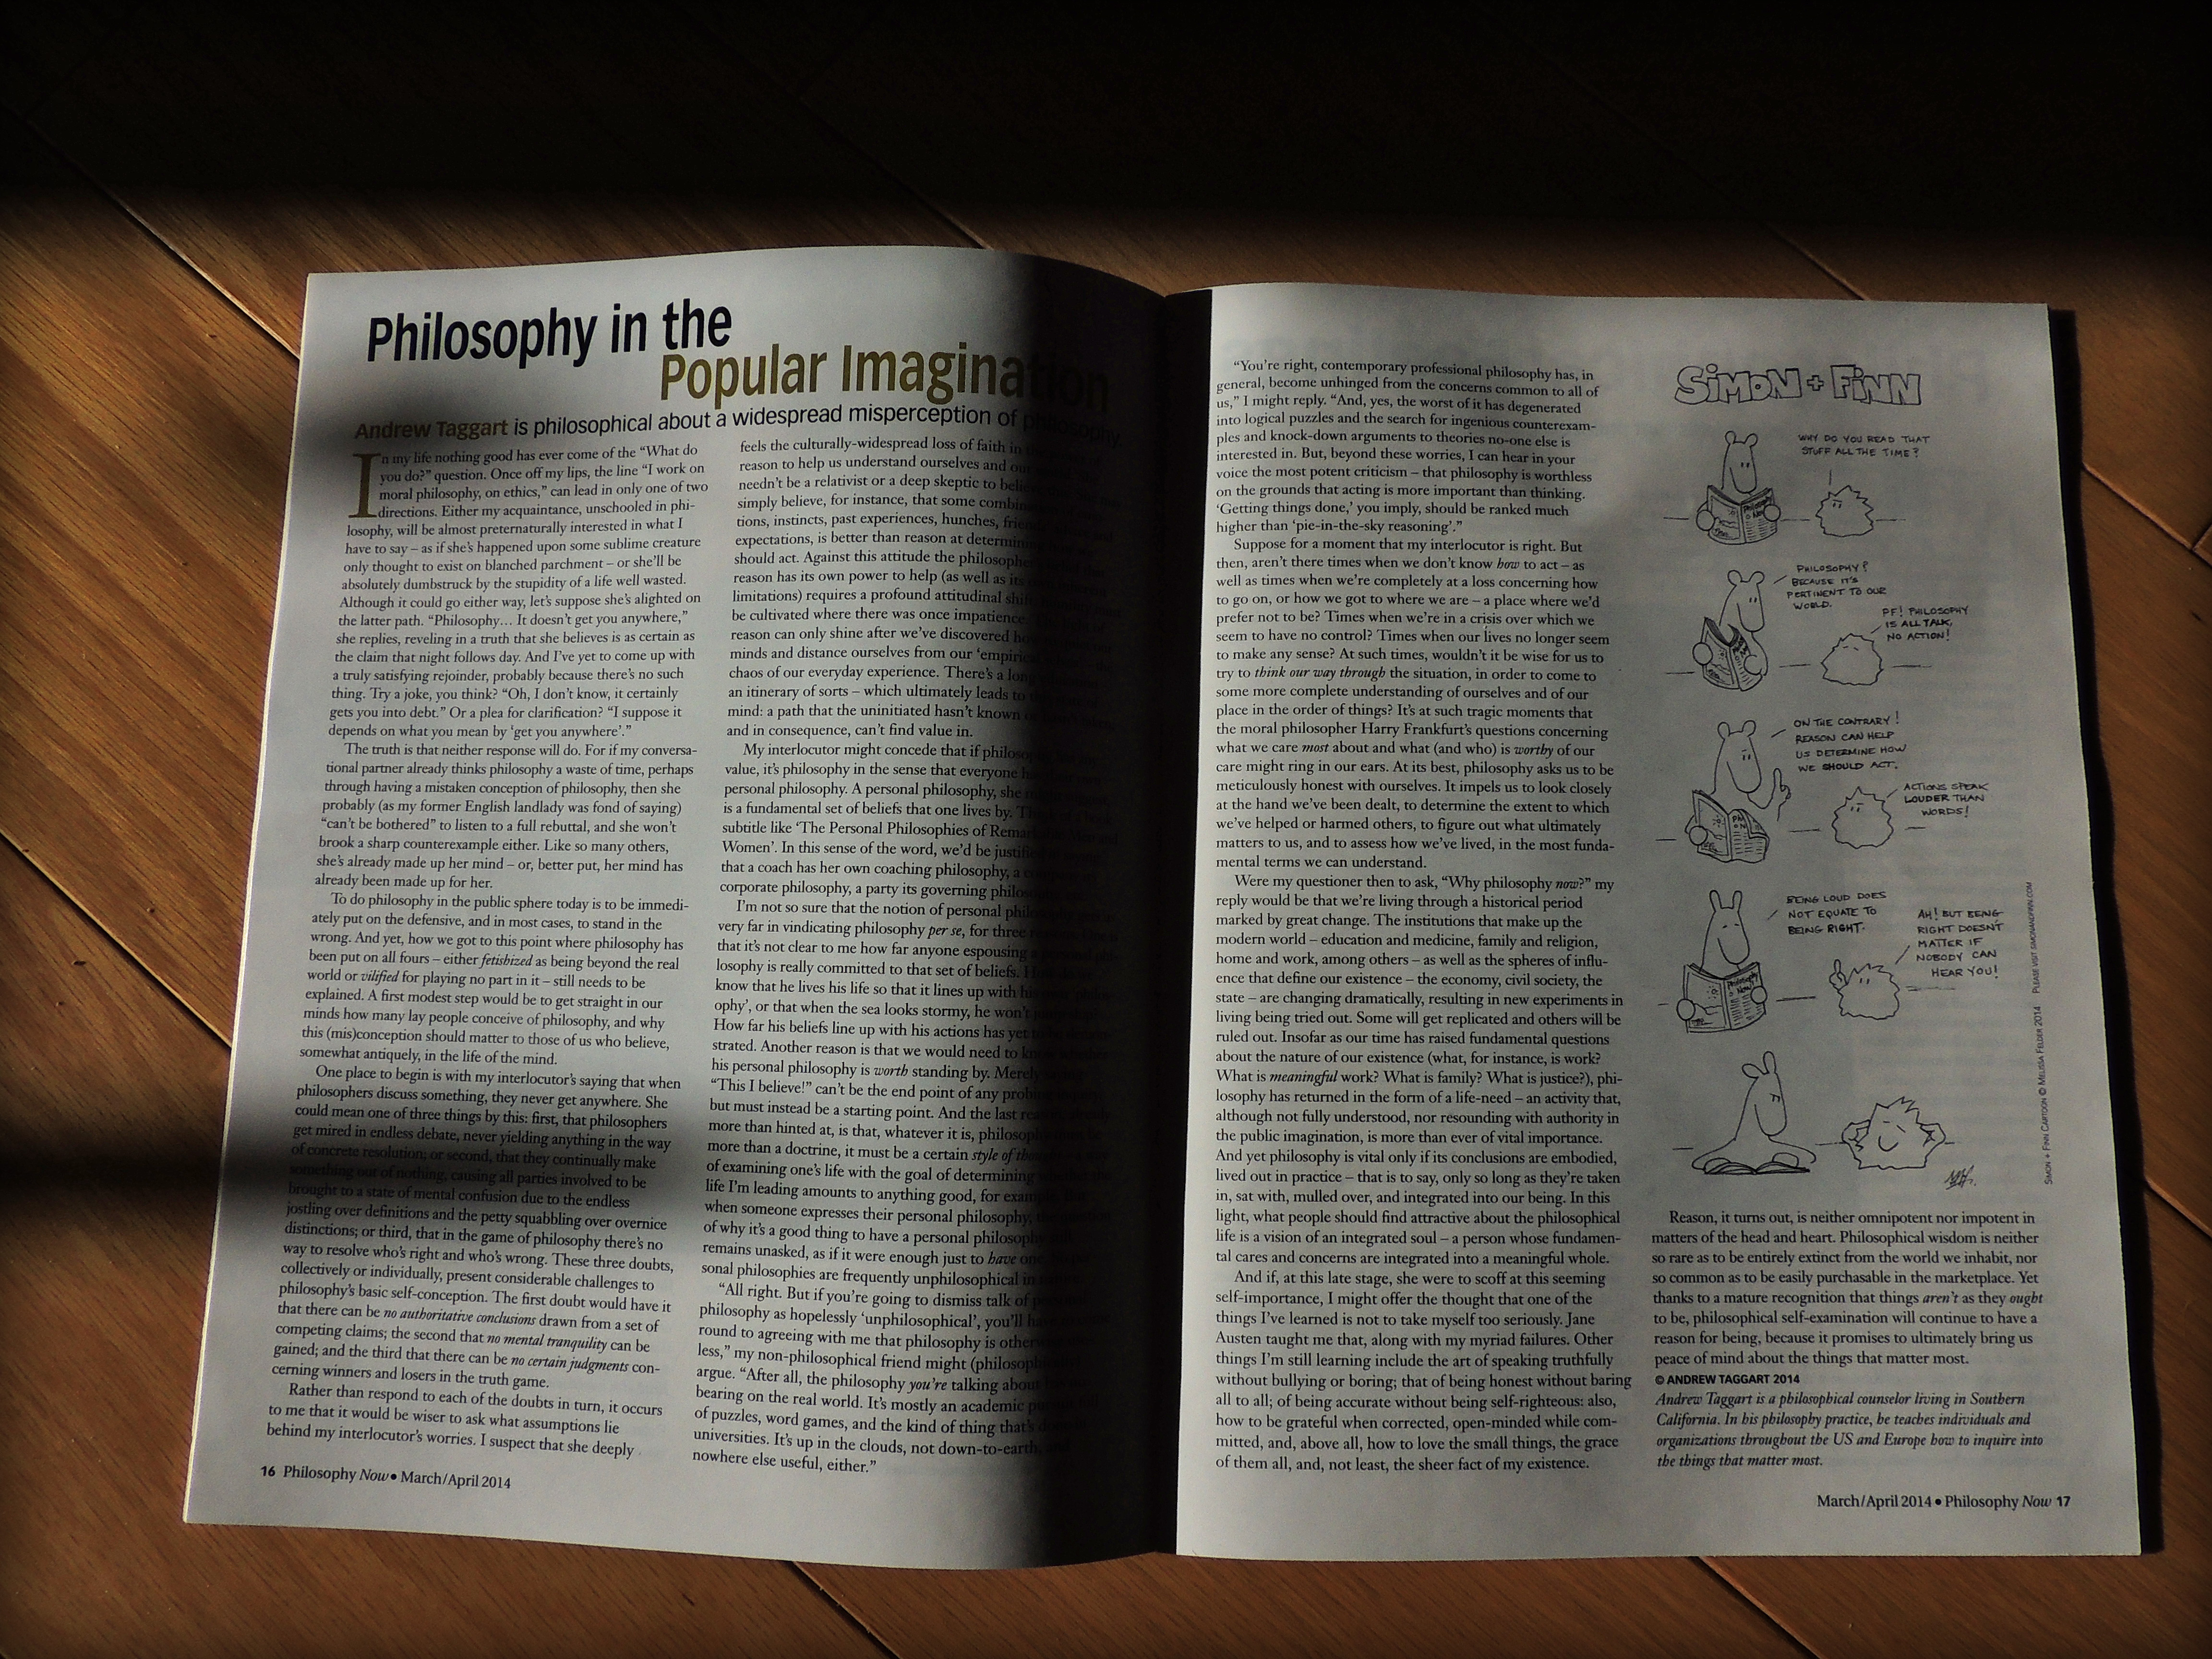 essays andrew james taggart practical philosopher ph d putting lives in order the philosophers magazine 57